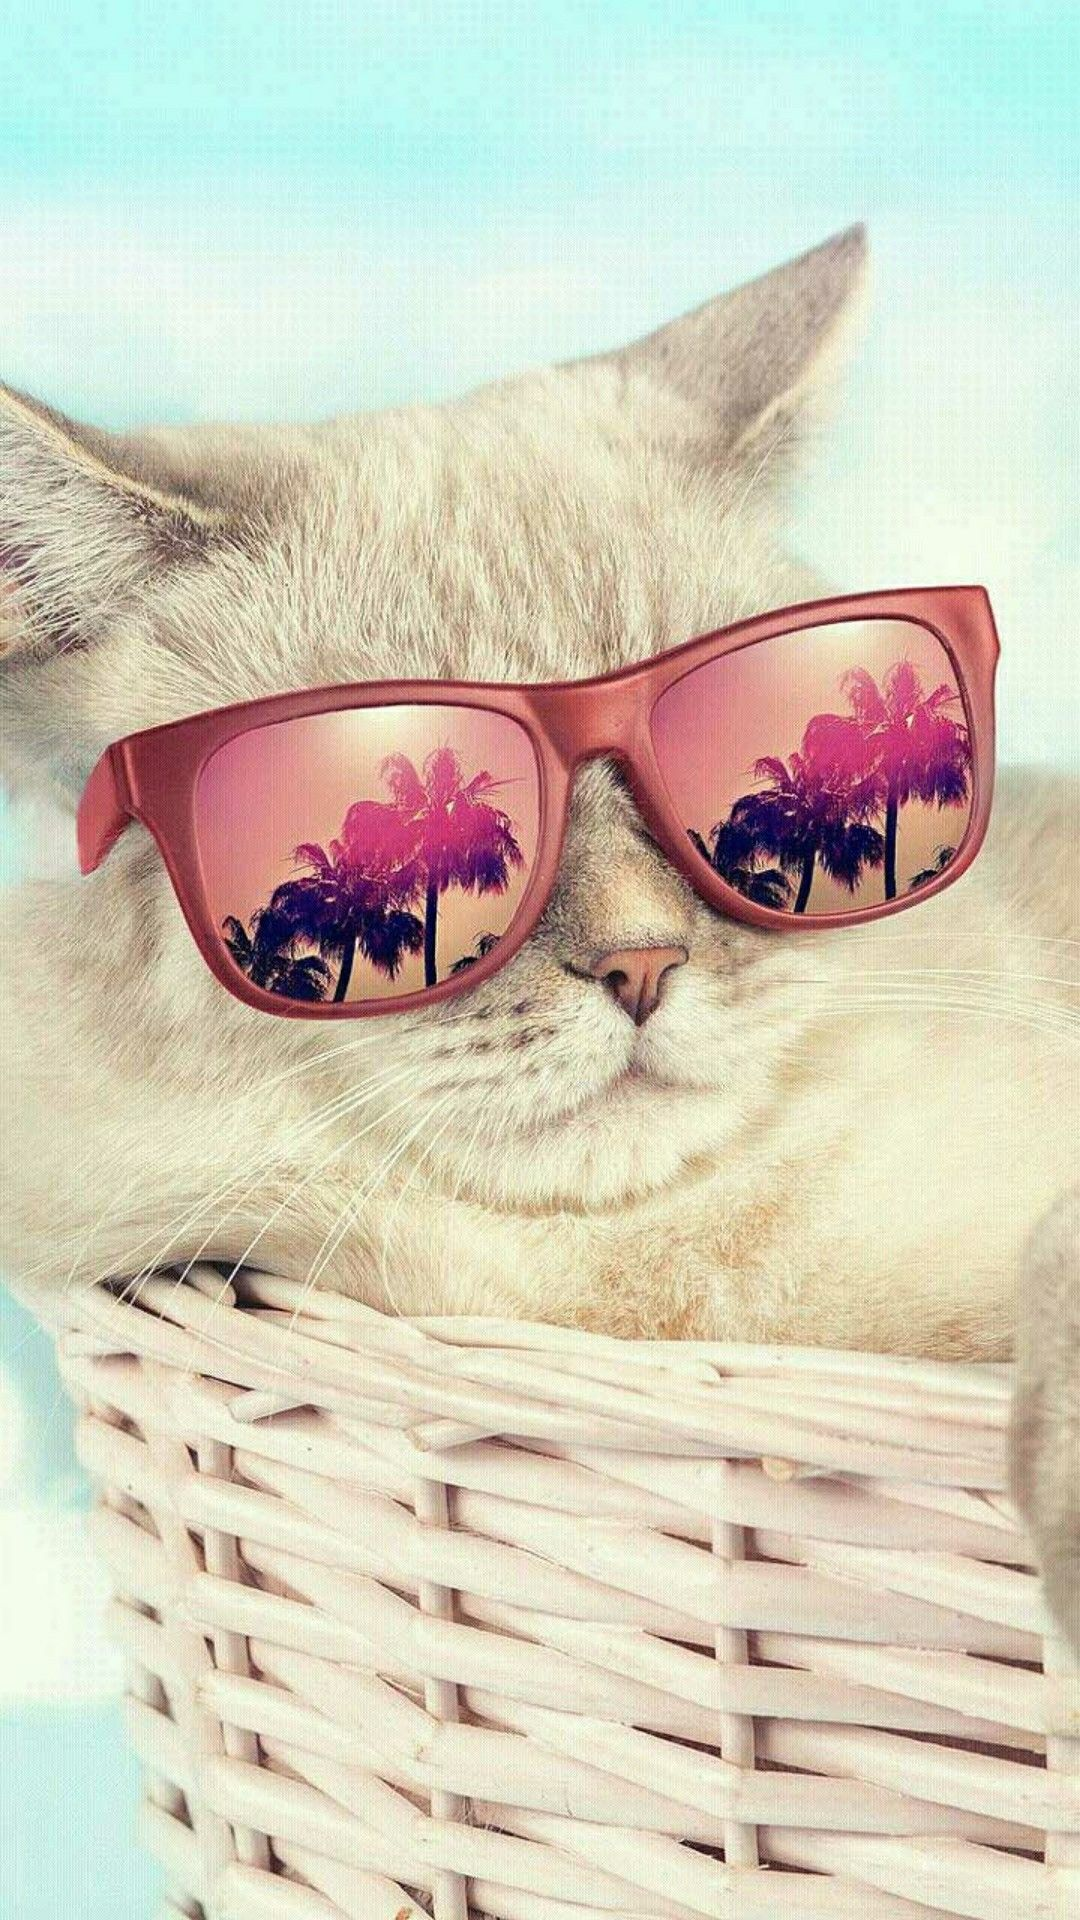 Cool cat (With images) Cute wallpapers, Animal wallpaper